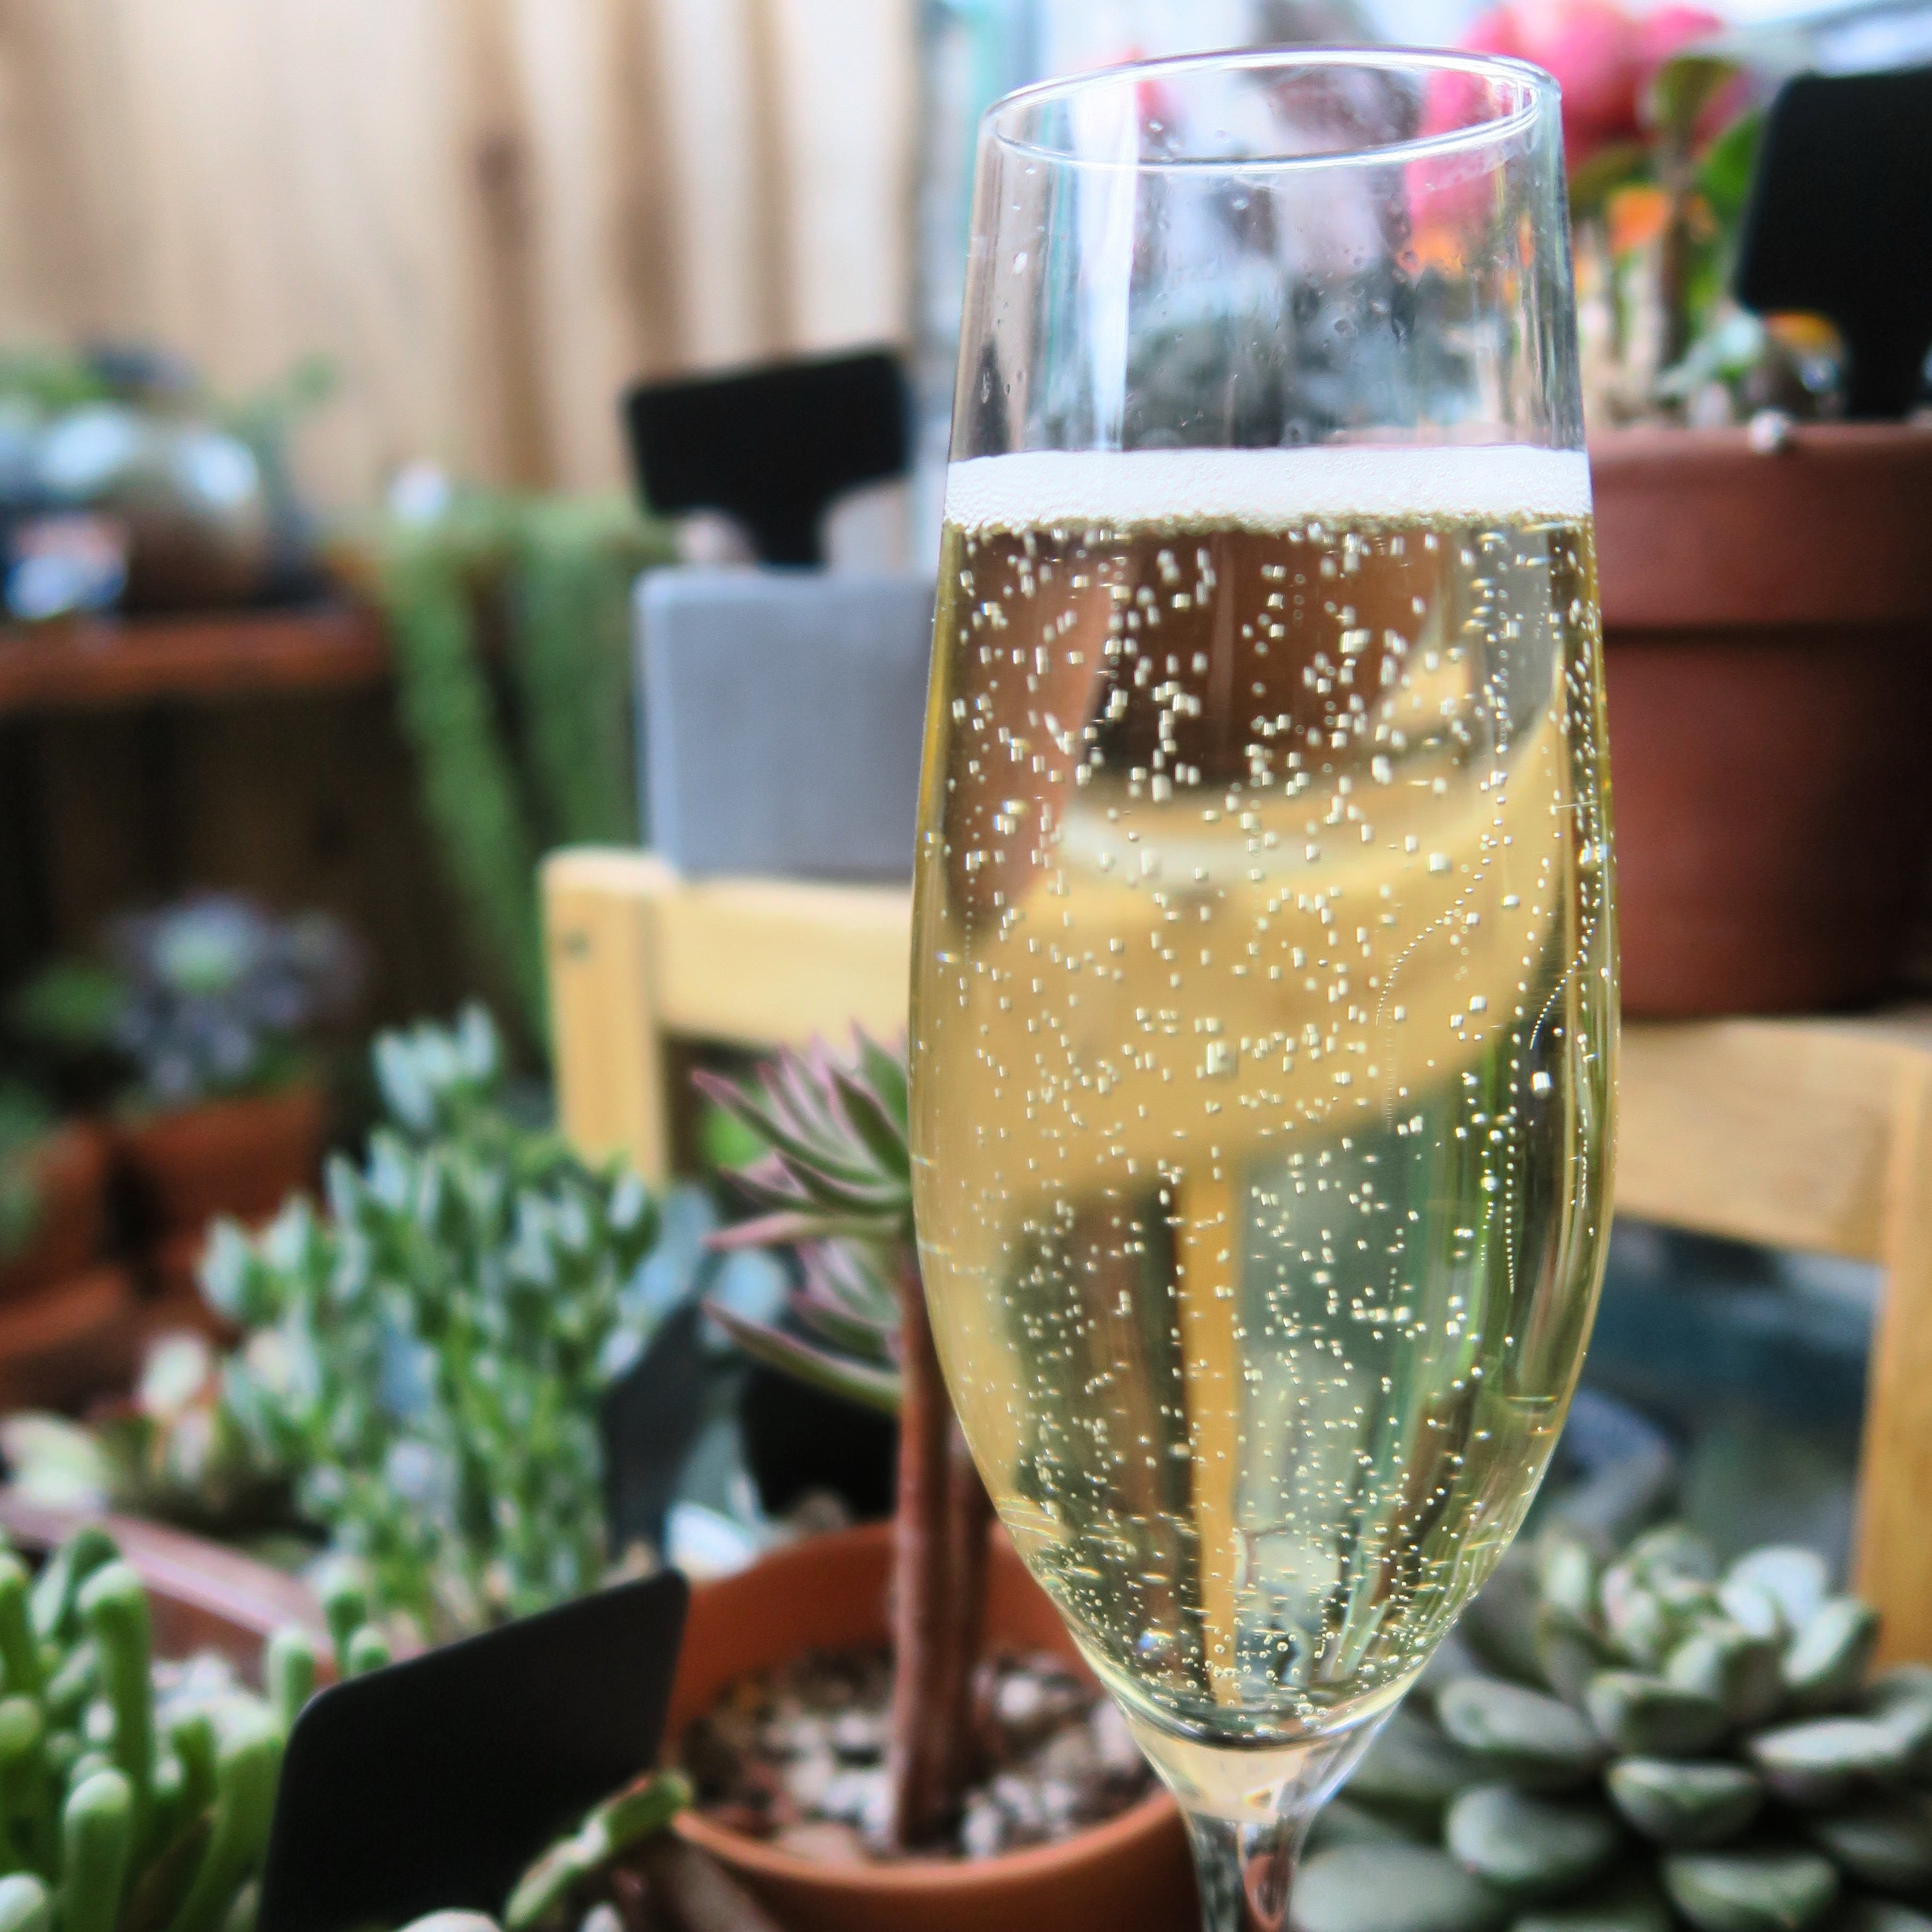 A golden glass of champagne in a garden full of effervescent bubbles.